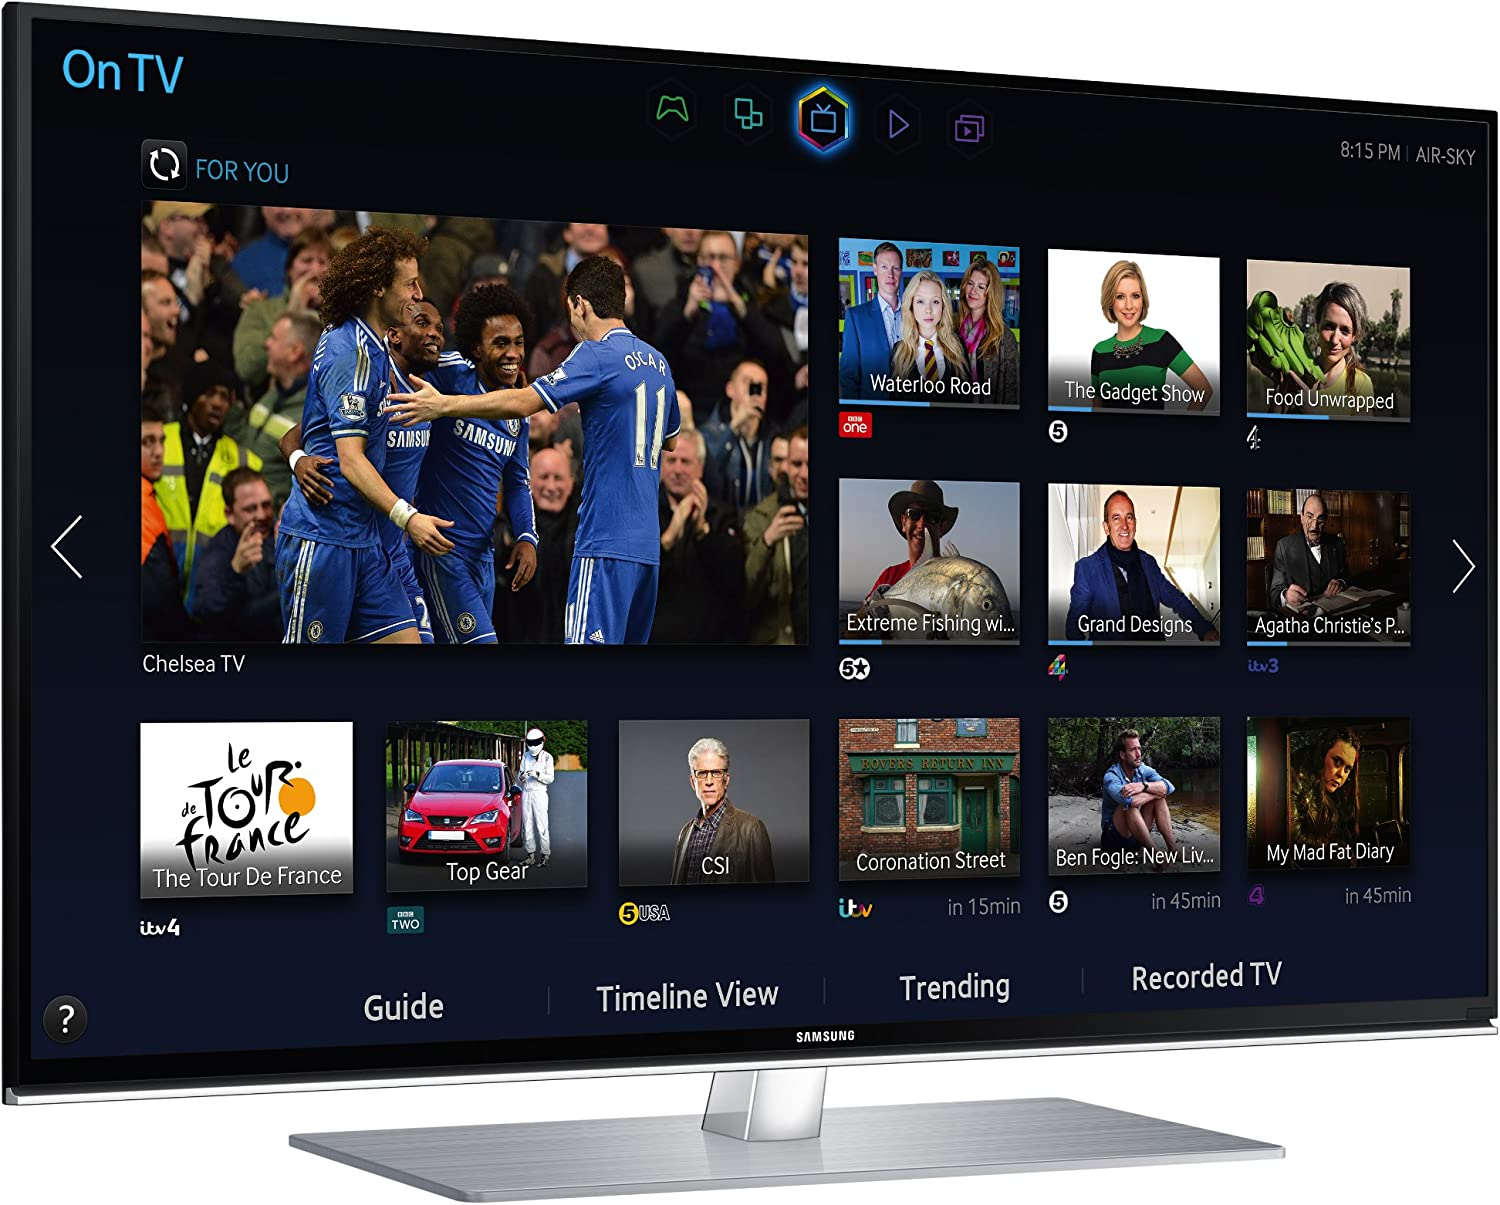 Samsung UE40H6700 40-Inch Widescreen Full HD 1080p 3D Slim LED Smart TV with Quad Core Processor and Freeview HD (Discontinued by Manufacturer) Sistema de Cine en casa - Equipo de Home Cinema: